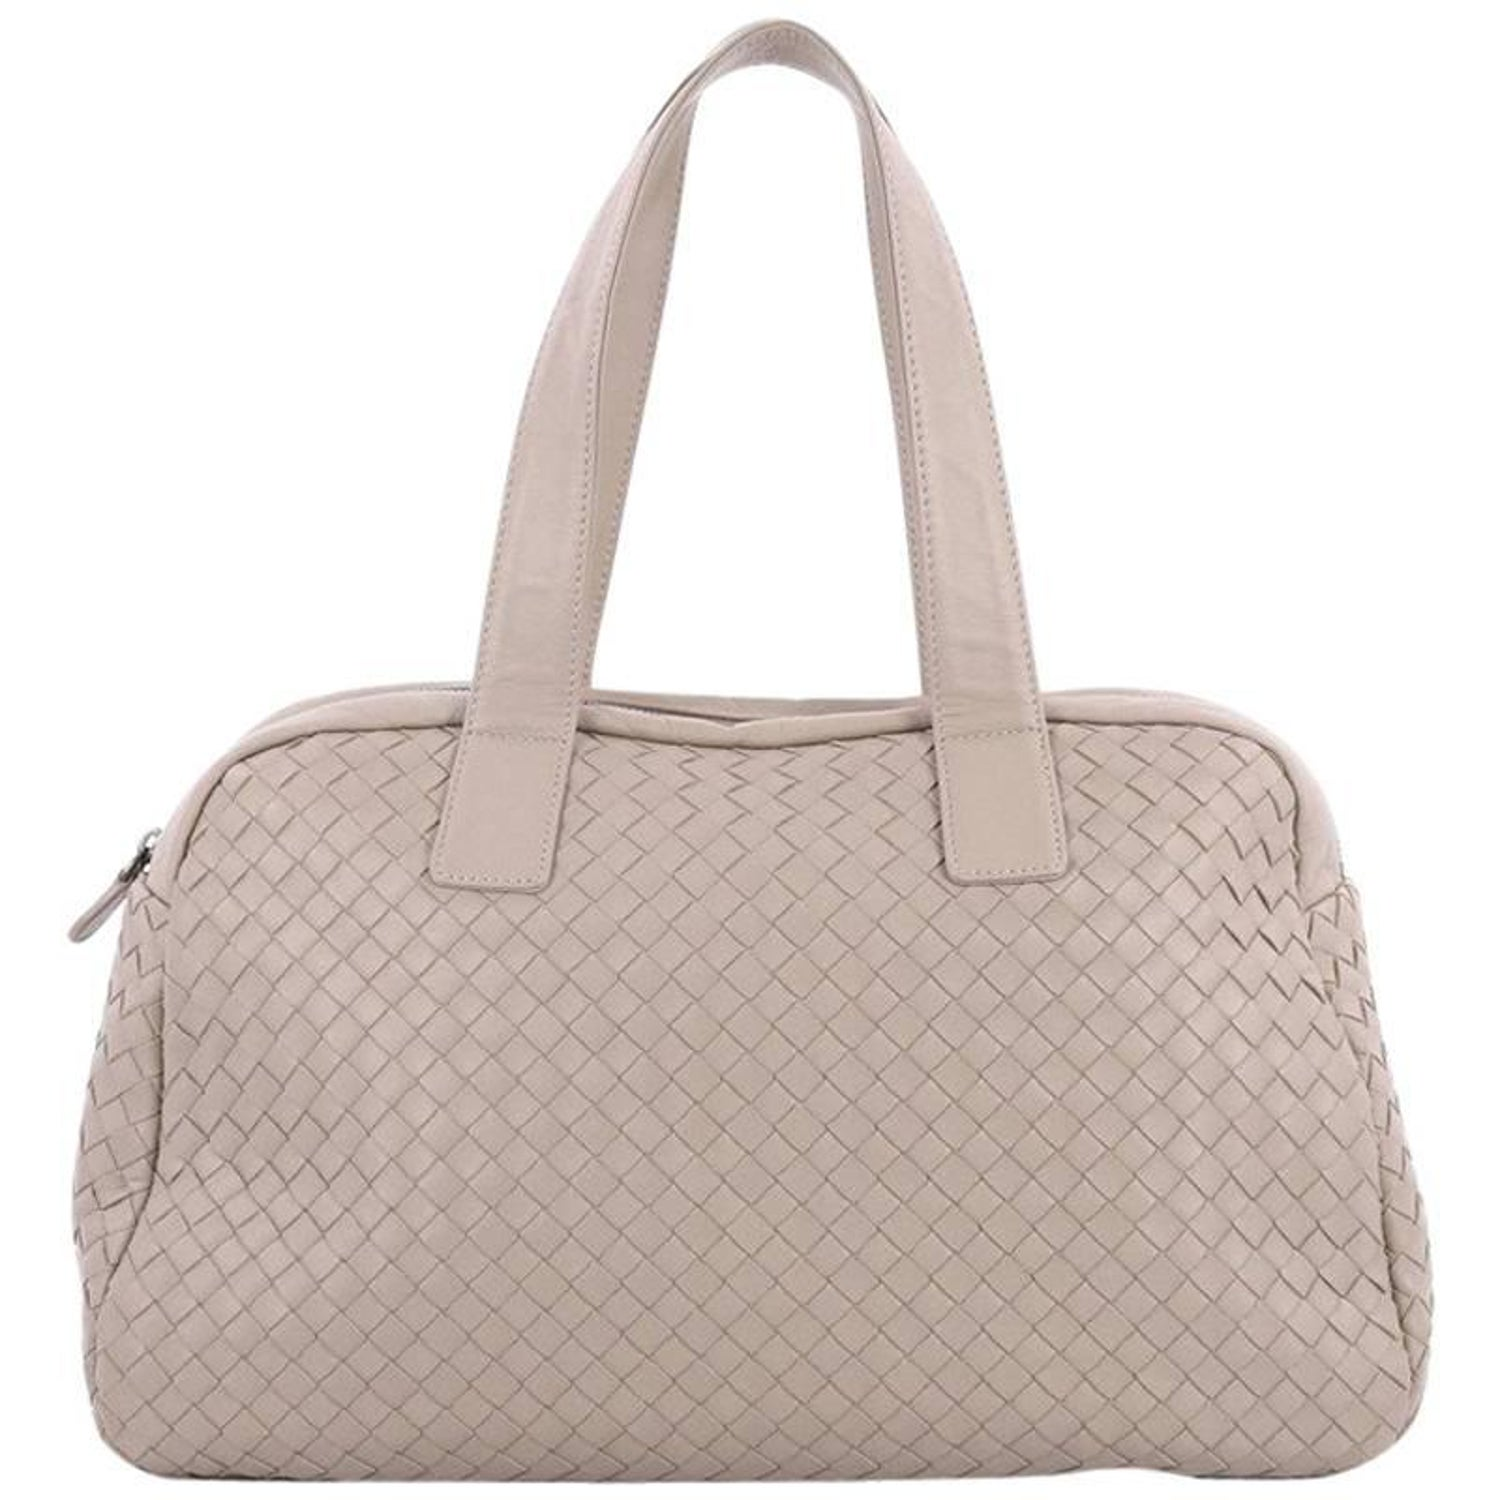 cd8588c275 Bottega Veneta Zip Boston Bag Intrecciato Nappa Medium at 1stdibs